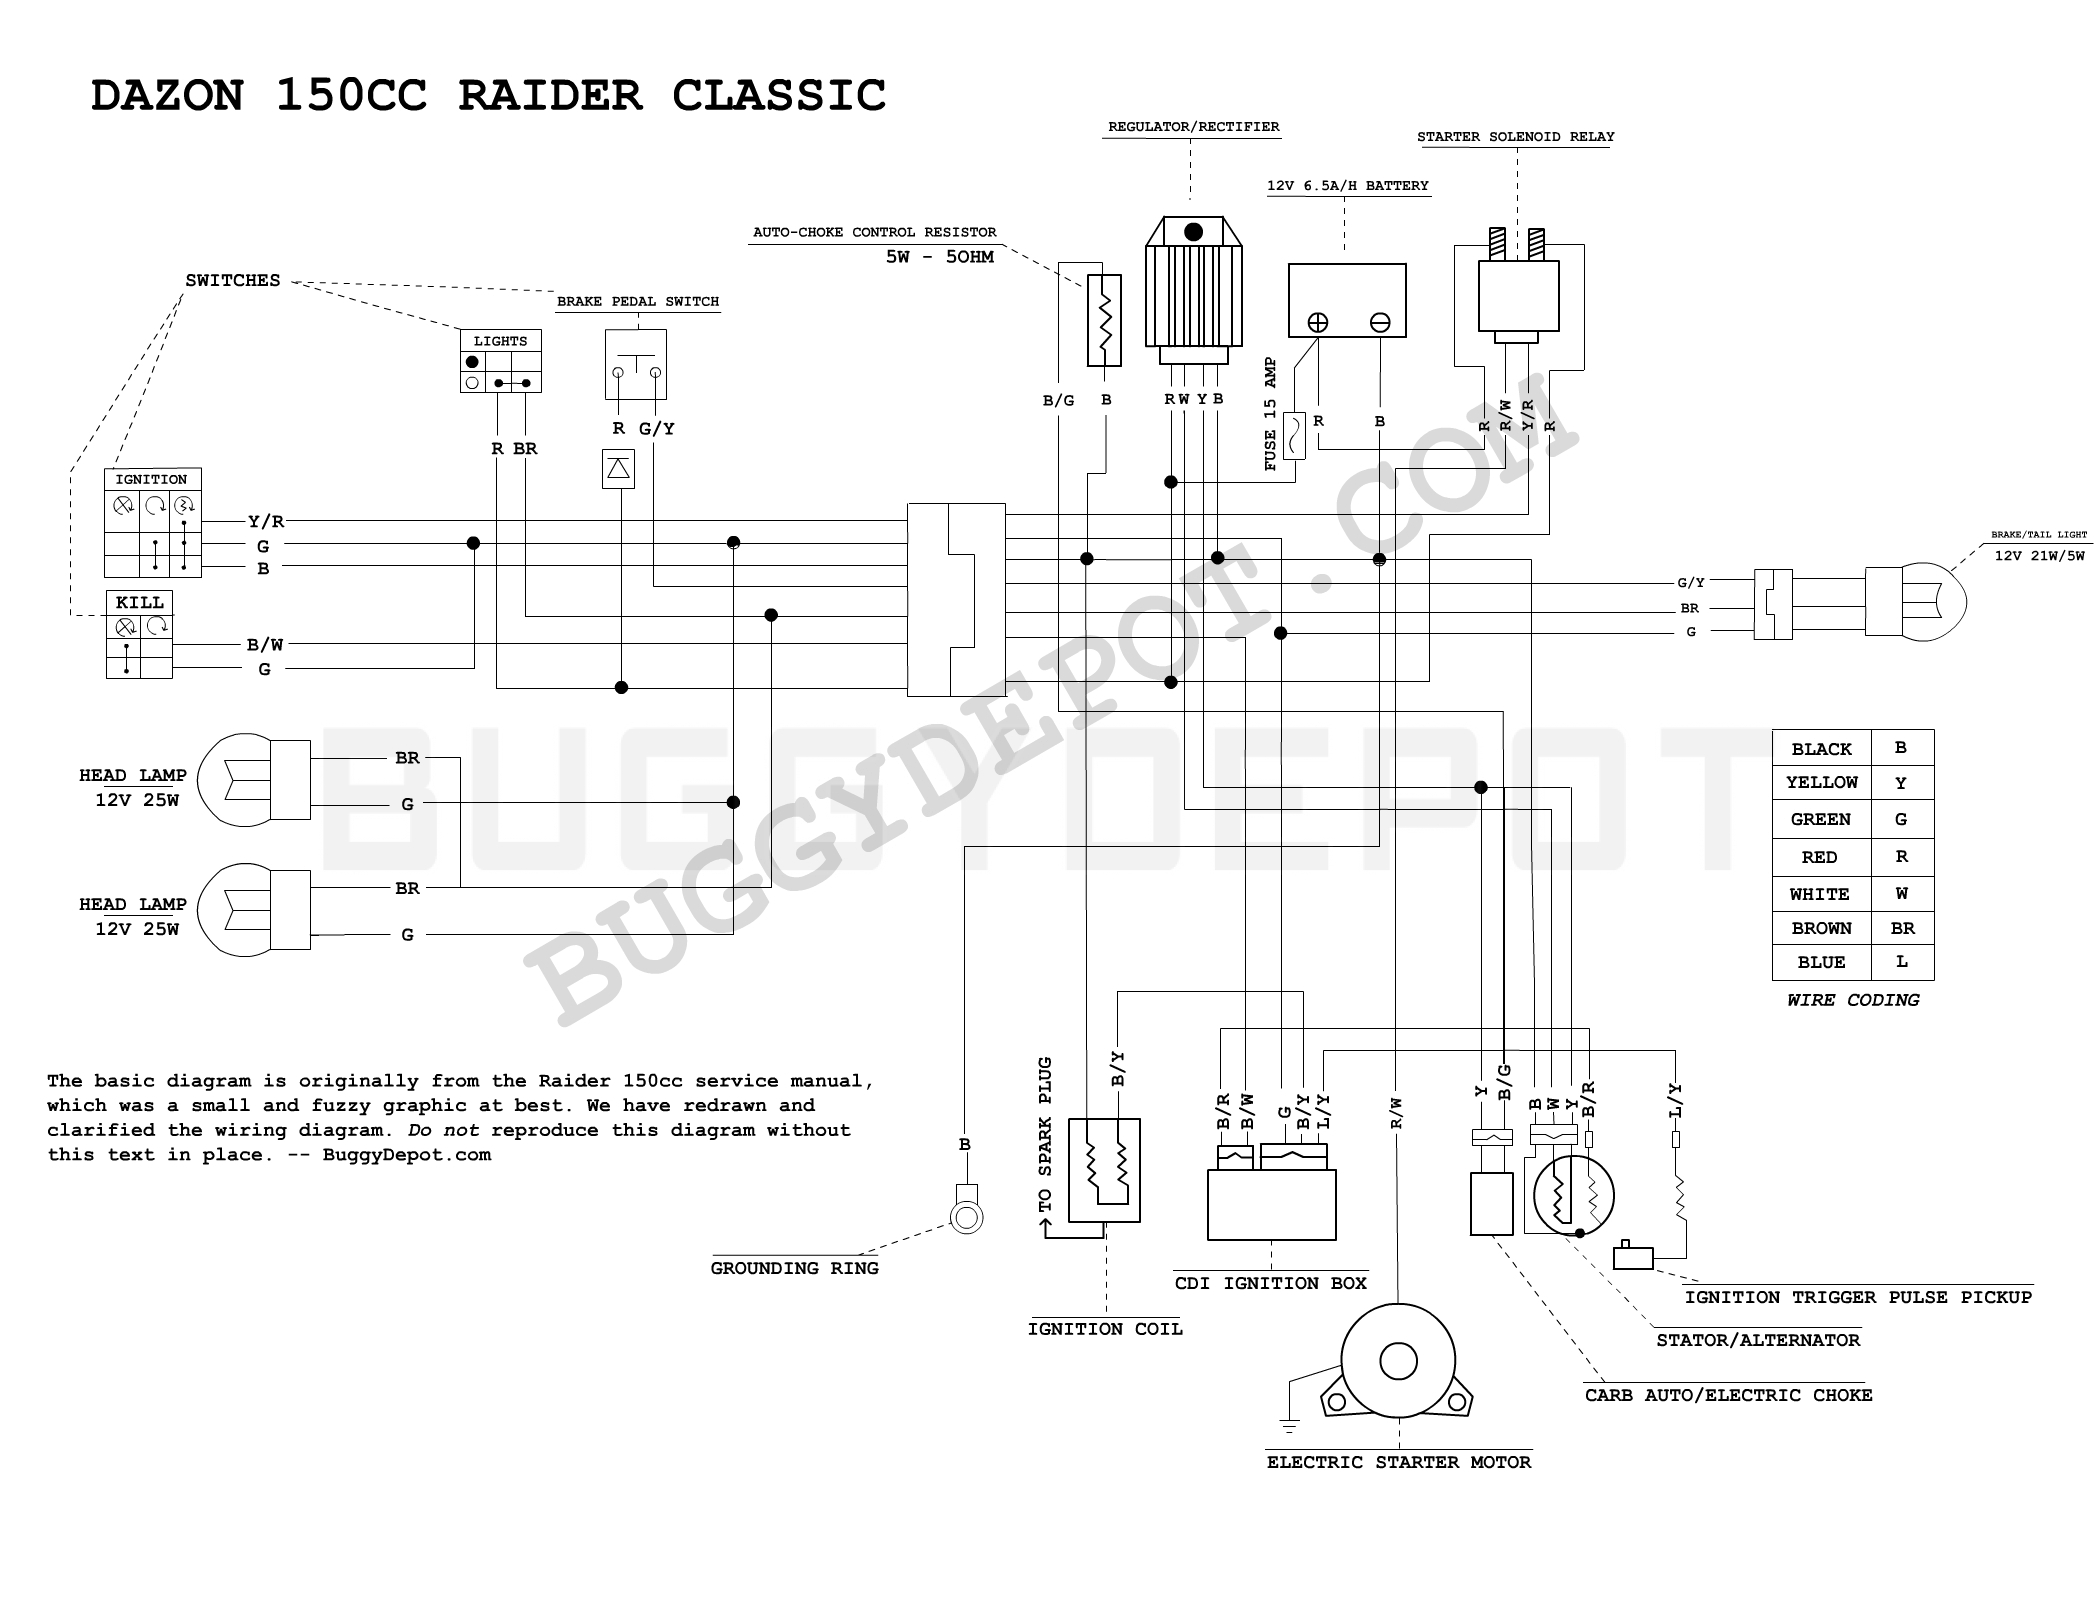 GY6 150cc Ignition Troubleshooting Guide: No Spark? - Buggy ... on kinroad gy6 buggy wiring-diagram, yerf dog spiderbox wiring-diagram, sunl 150cc buggy wiring-diagram, hammerhead gts 150cc engine wiring schematics, hammerhead go carts, hammerhead go karts 500cc, hammerhead 250 motor diagram, roketa buggy wiring-diagram, hammerhead gt 150 carburetor replacement, gy6 150cc buggy wiring-diagram, hammerhead go karts cable, ezgo txt wiring-diagram, hammerhead off-road go karts,